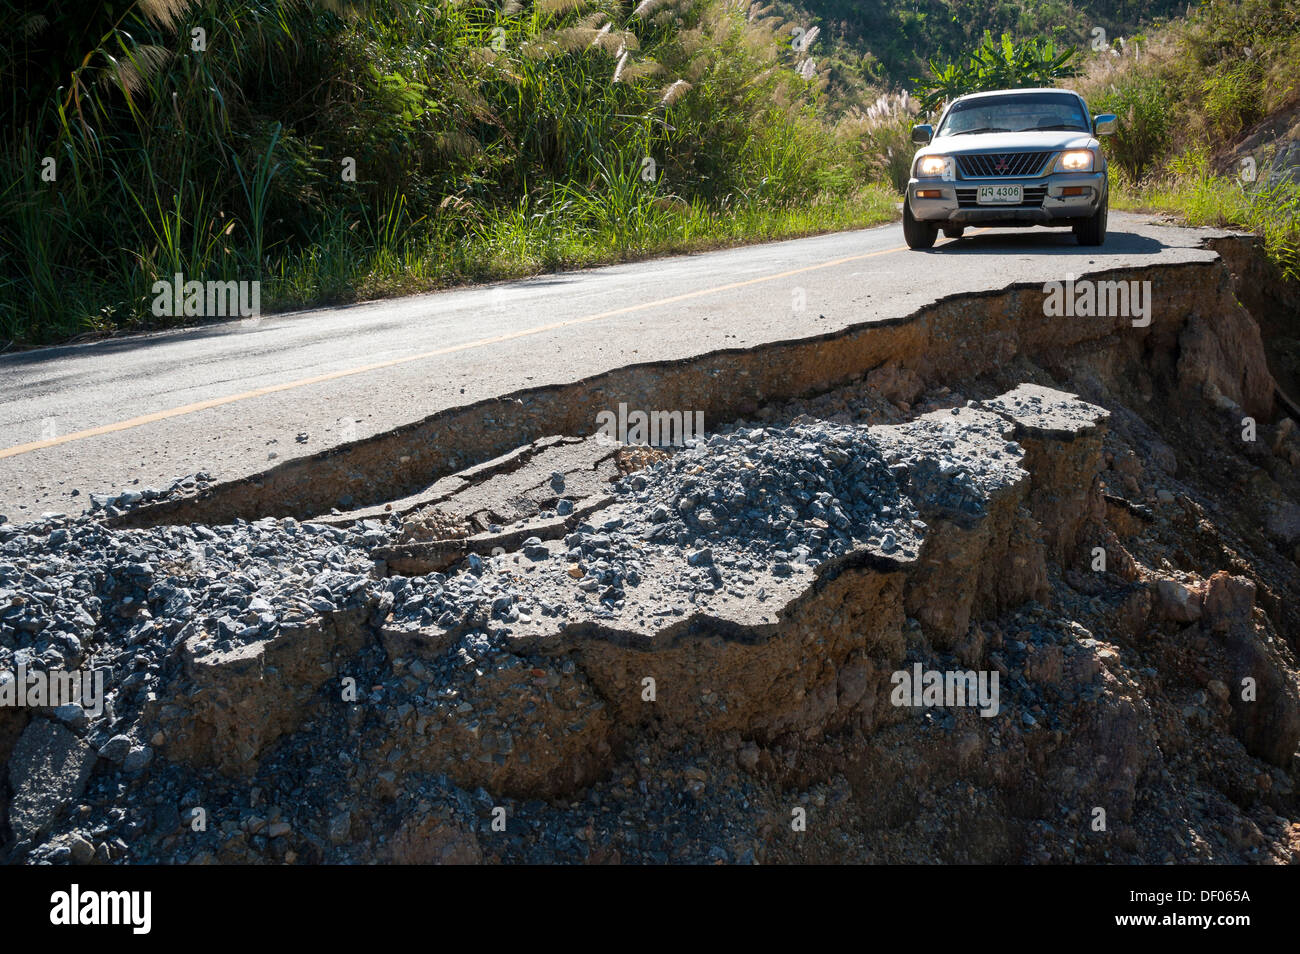 SUV or Pick-up on a destroyed tarmac road, Northern Thailand, Thailand, Asia - Stock Image